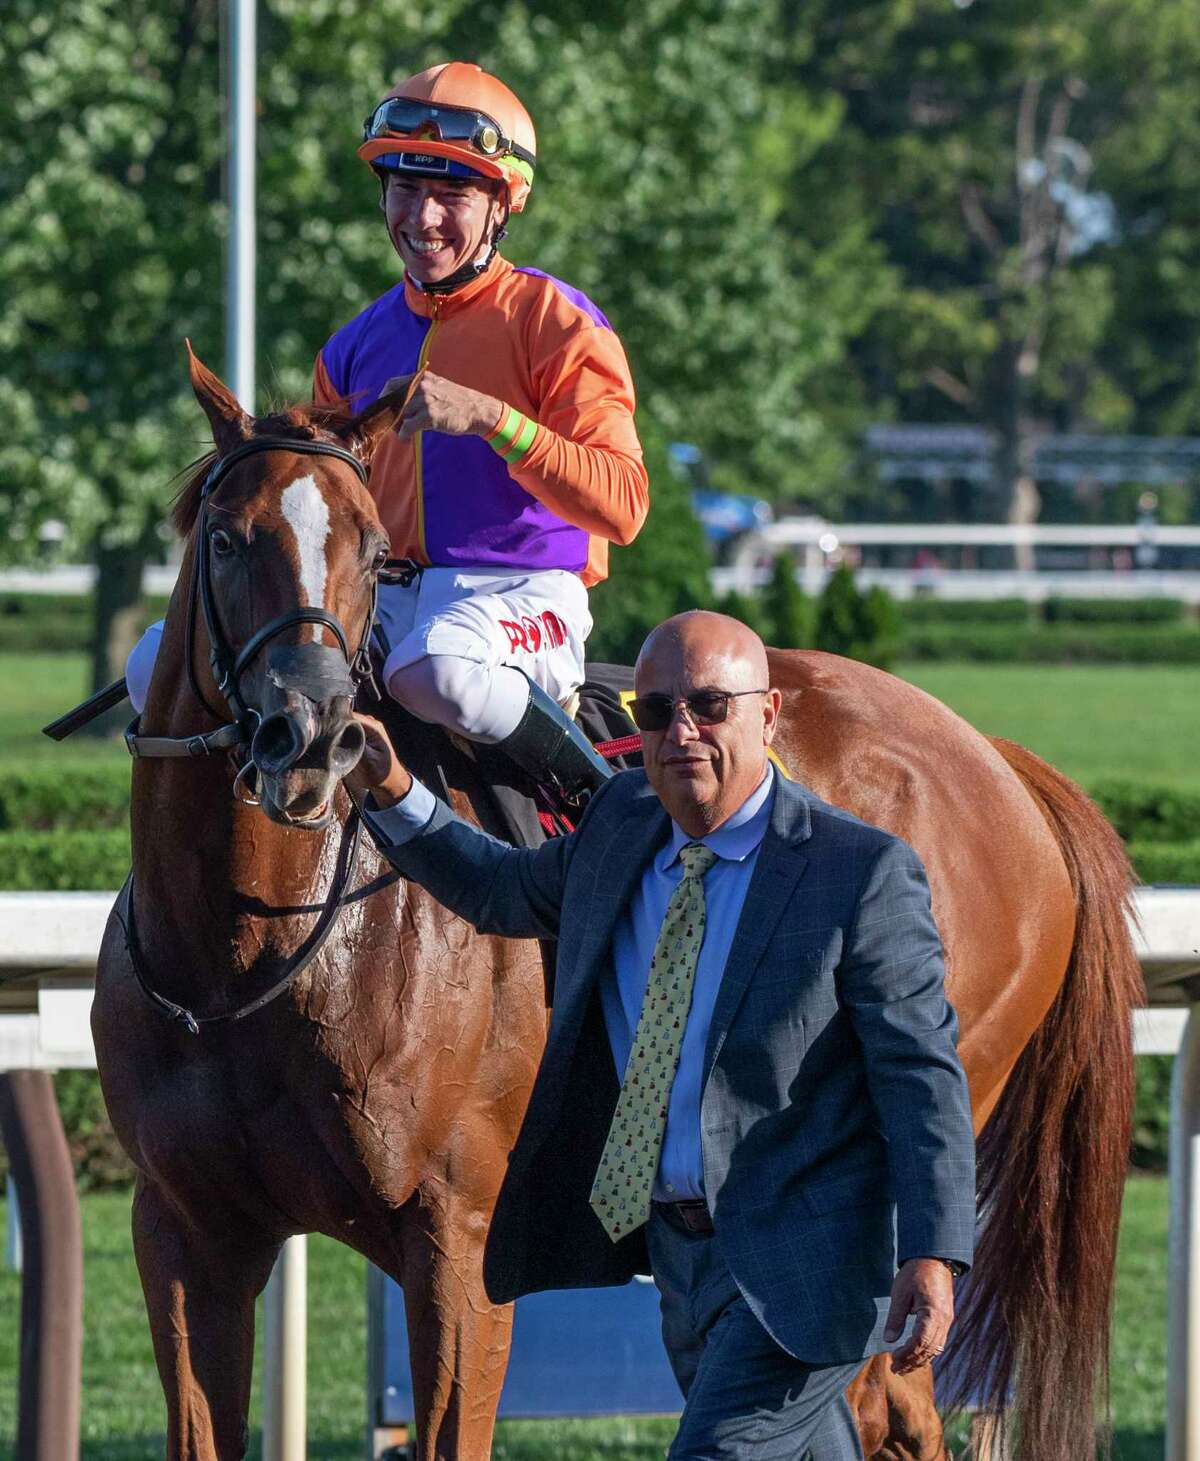 Got Stormy, with jockey Tyler Gaffalione, is led to the winner's circle after winning the 37th running of the Fourstardave at Saratoga Race Course on Saturday, Aug. 14, 2021, in Saratoga Springs, N.Y.